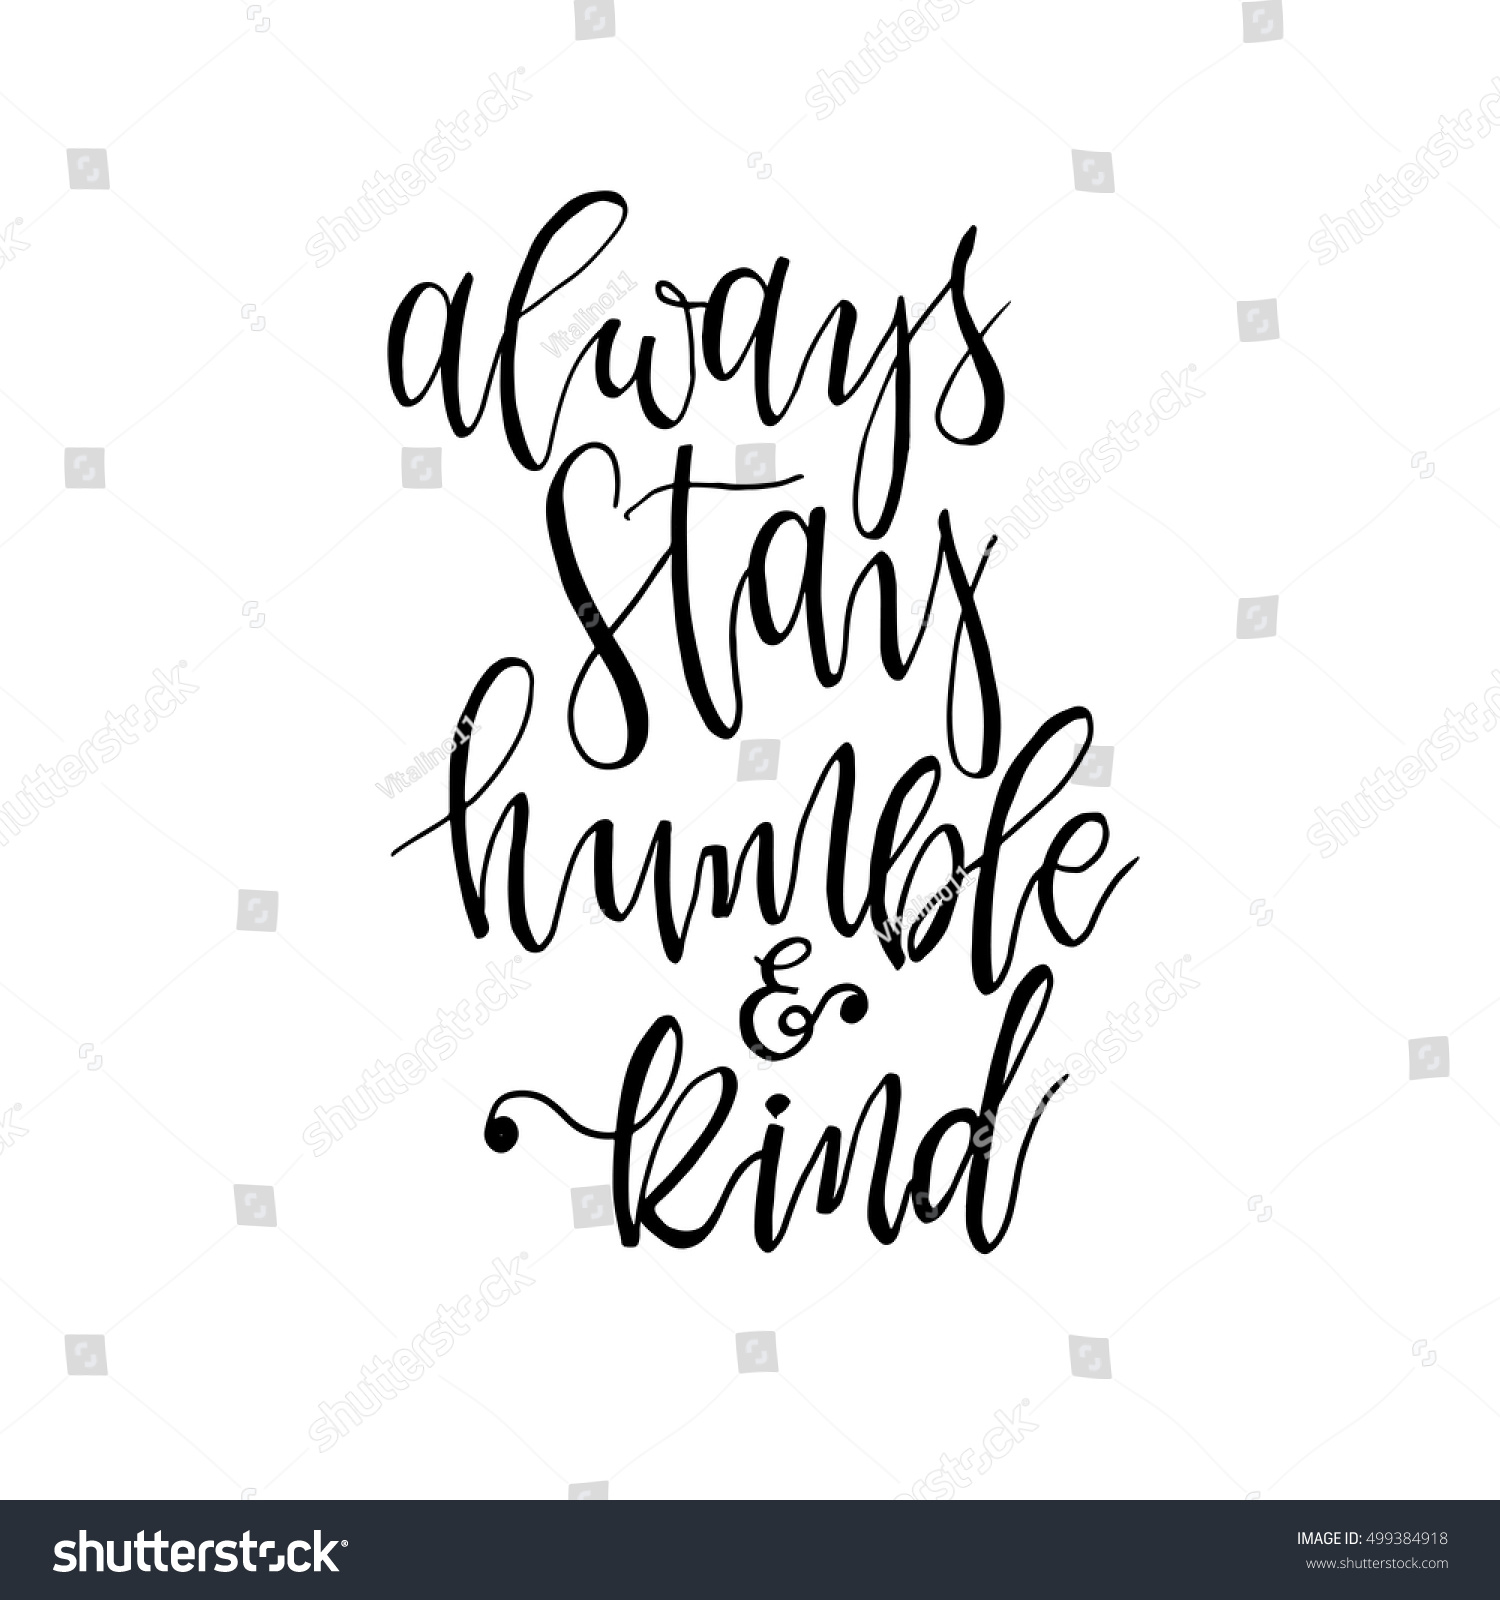 17 Inspiring Wonderful Black And White Contemporary: Royalty-free Always Stay Humble And Kind… #499384918 Stock